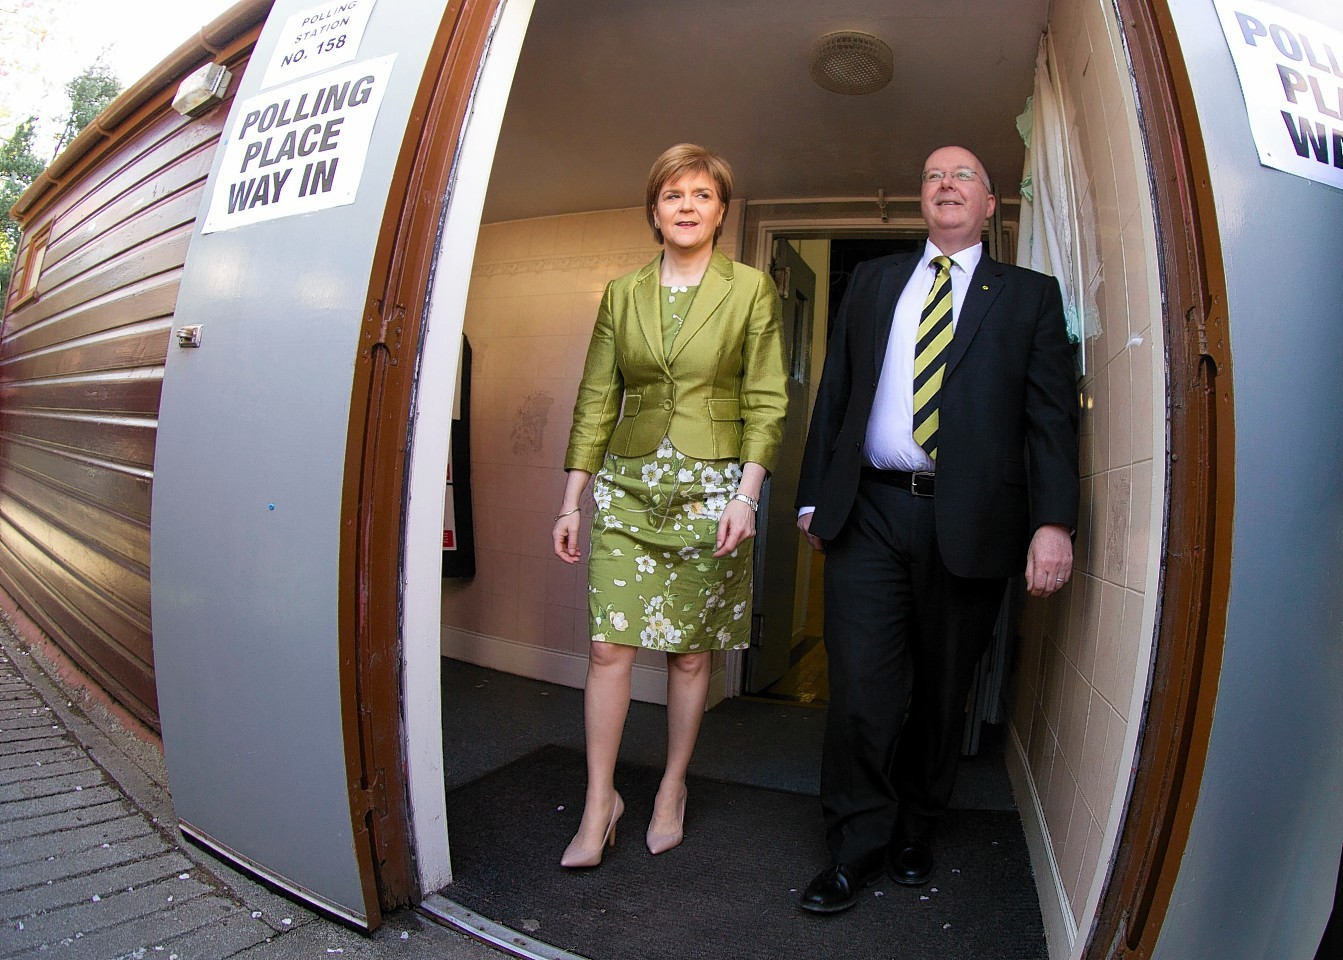 Nicola Sturgeon casts vote at Broomhouse Community Hall in Baillieston with her husband Peter Murrell.